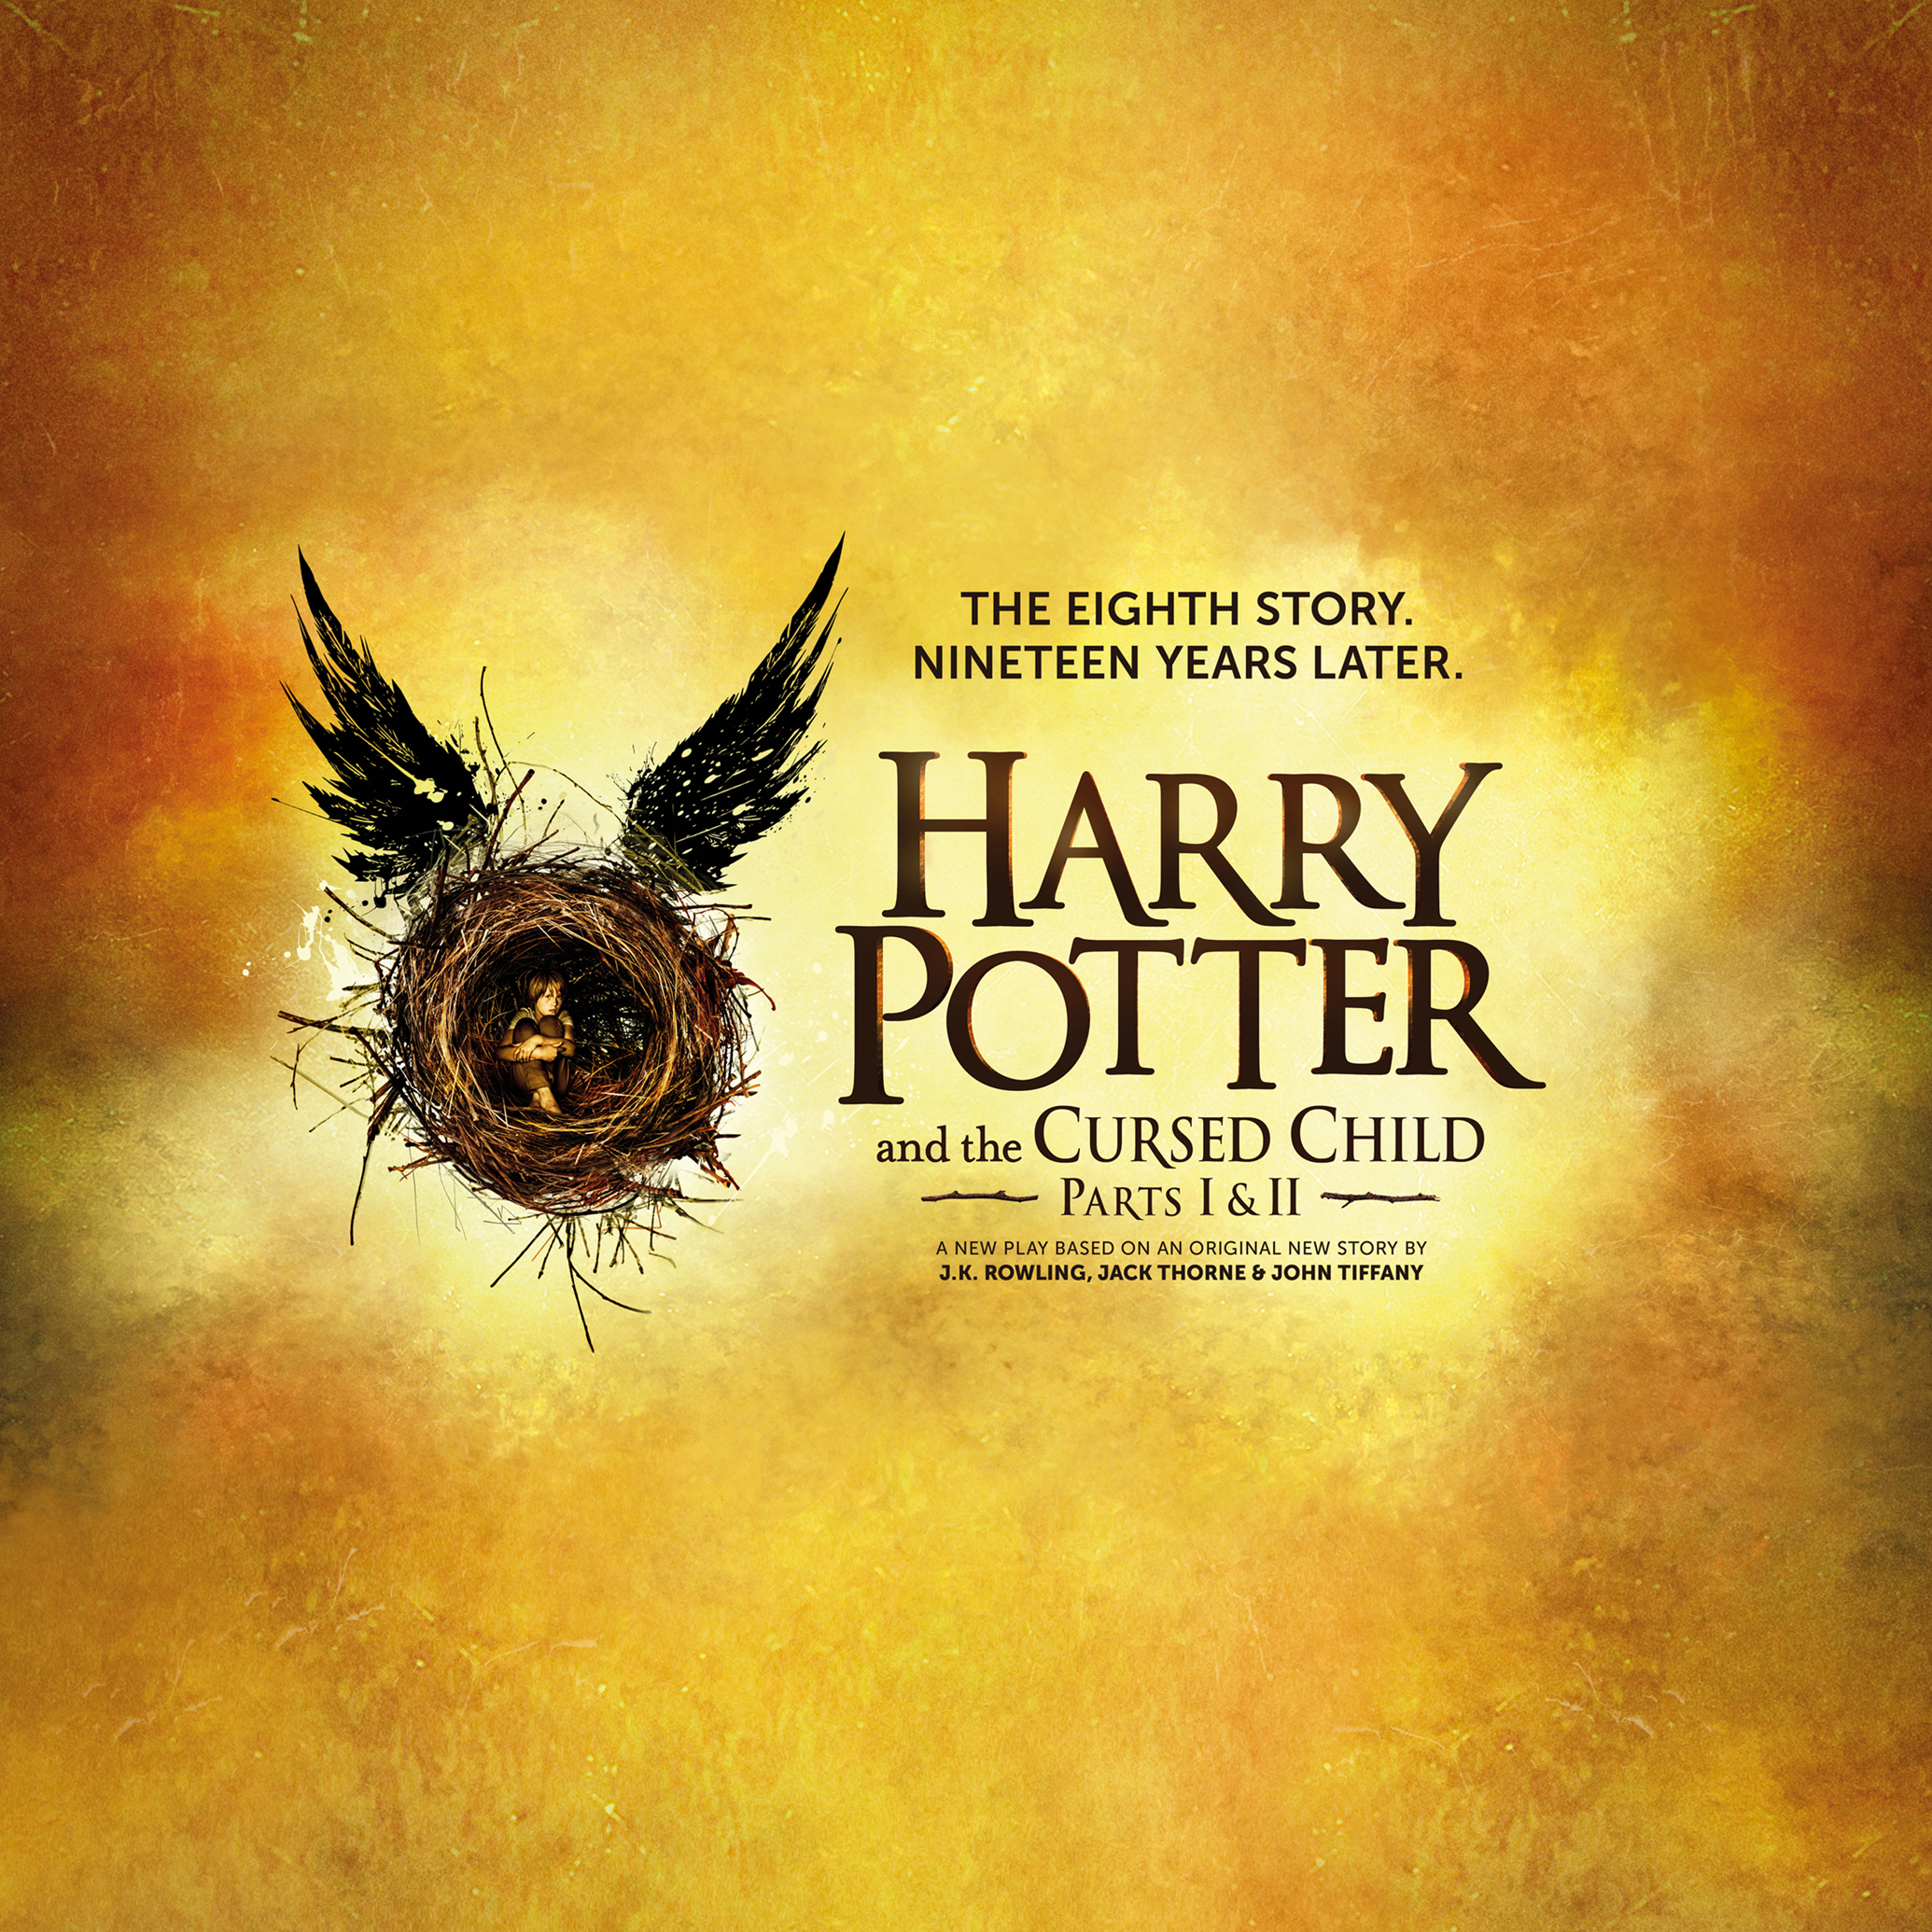 Afbeeldingsresultaat voor harry potter and the cursed child